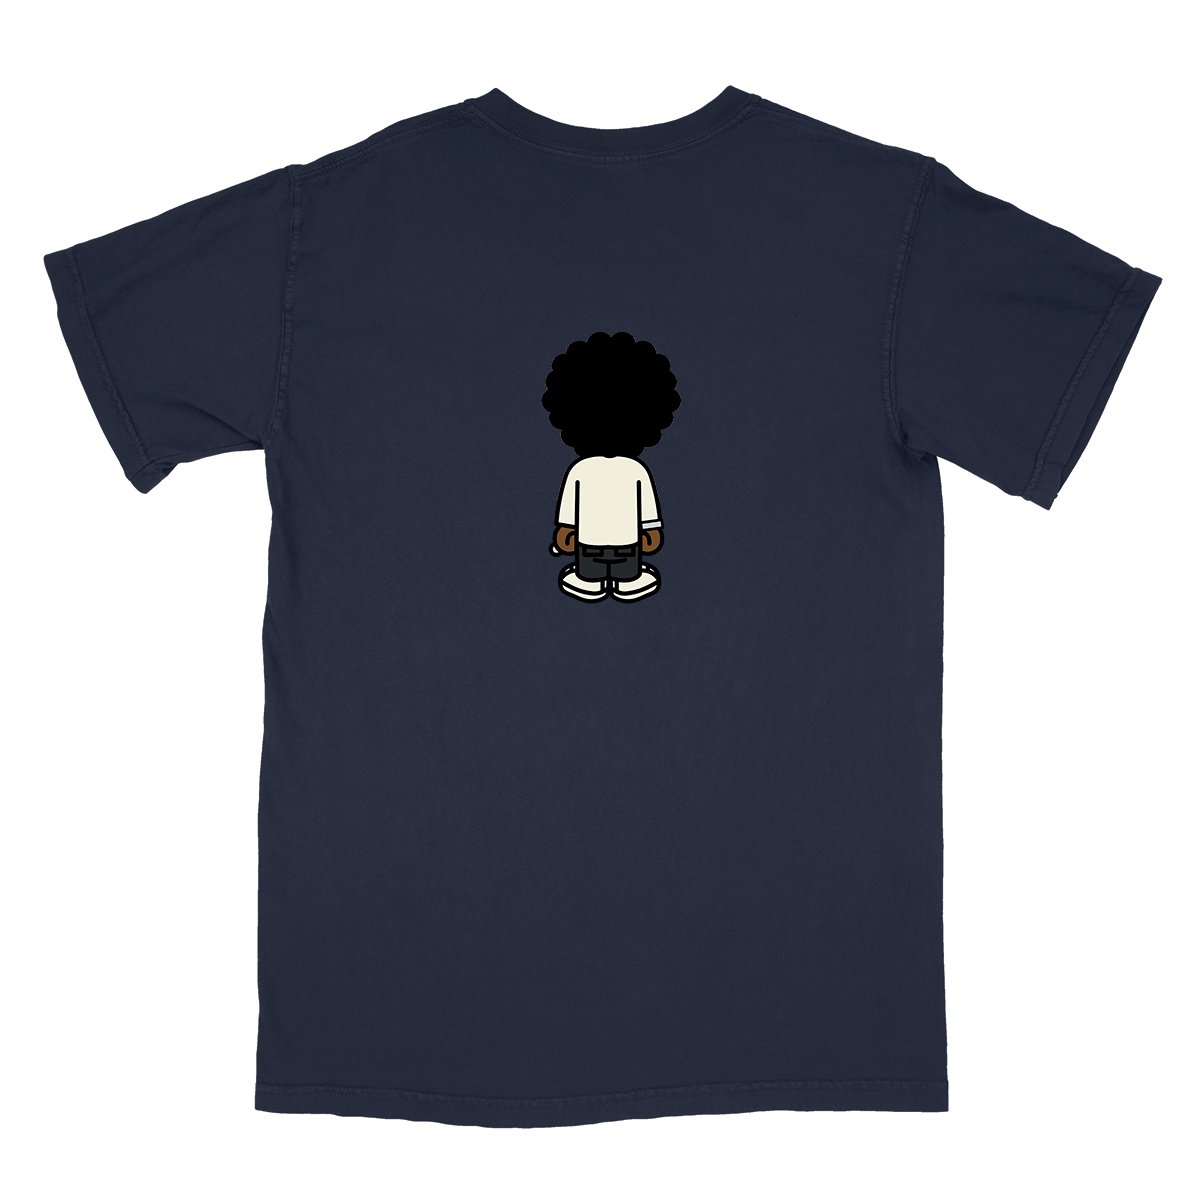 Wasting Time Tee - Navy